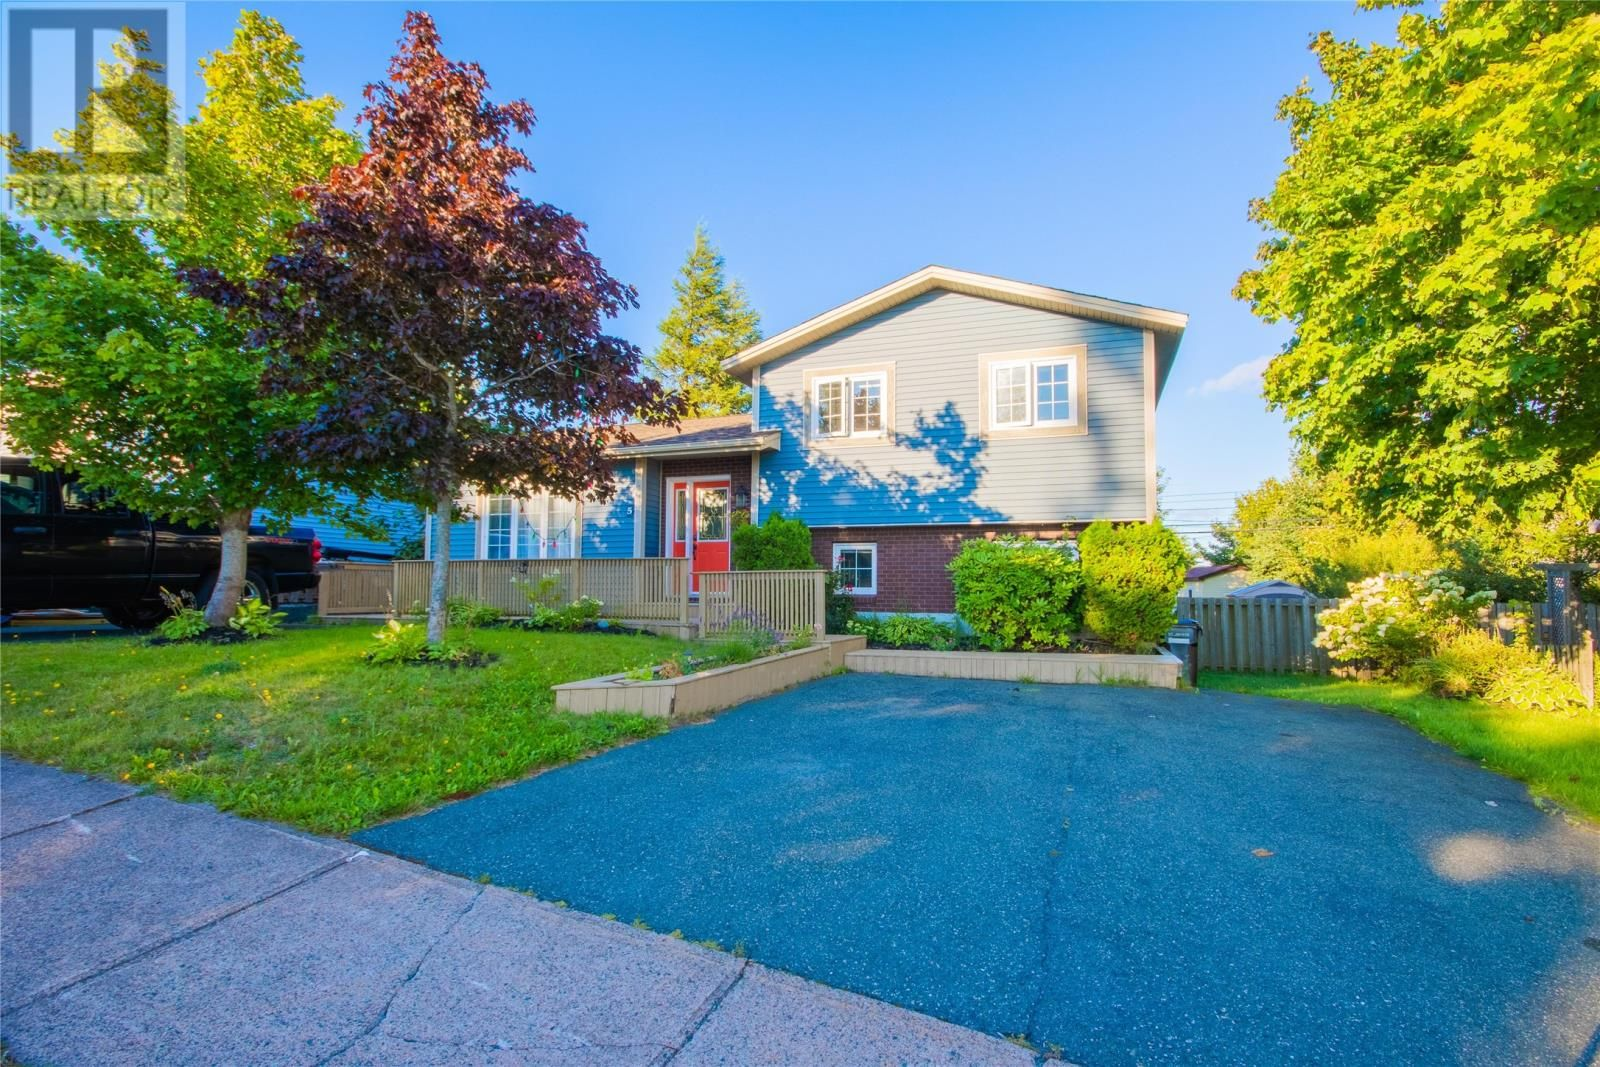 Main Photo: 5 Burling Crescent in St. John's: House for sale : MLS®# 1236597